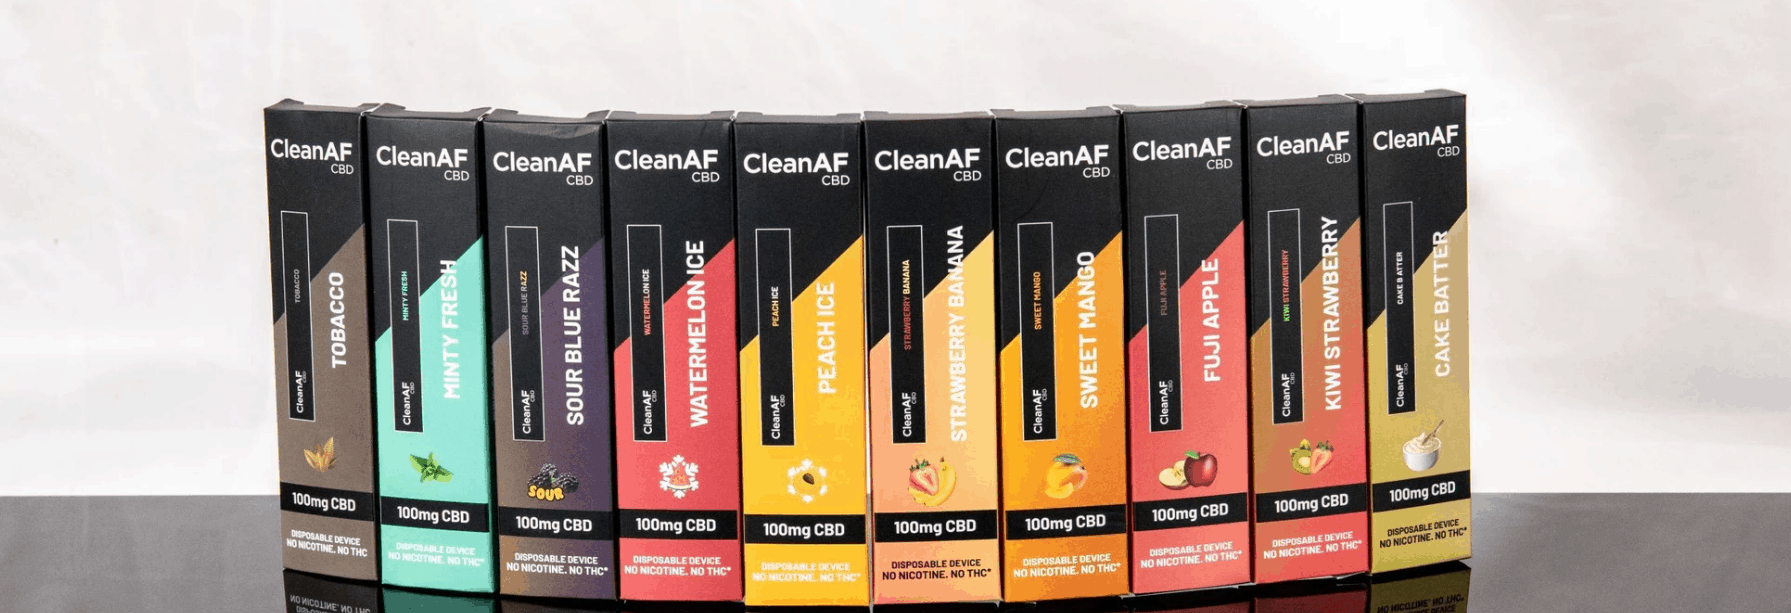 CleanAf CBD Vape Coupon Code Our Products